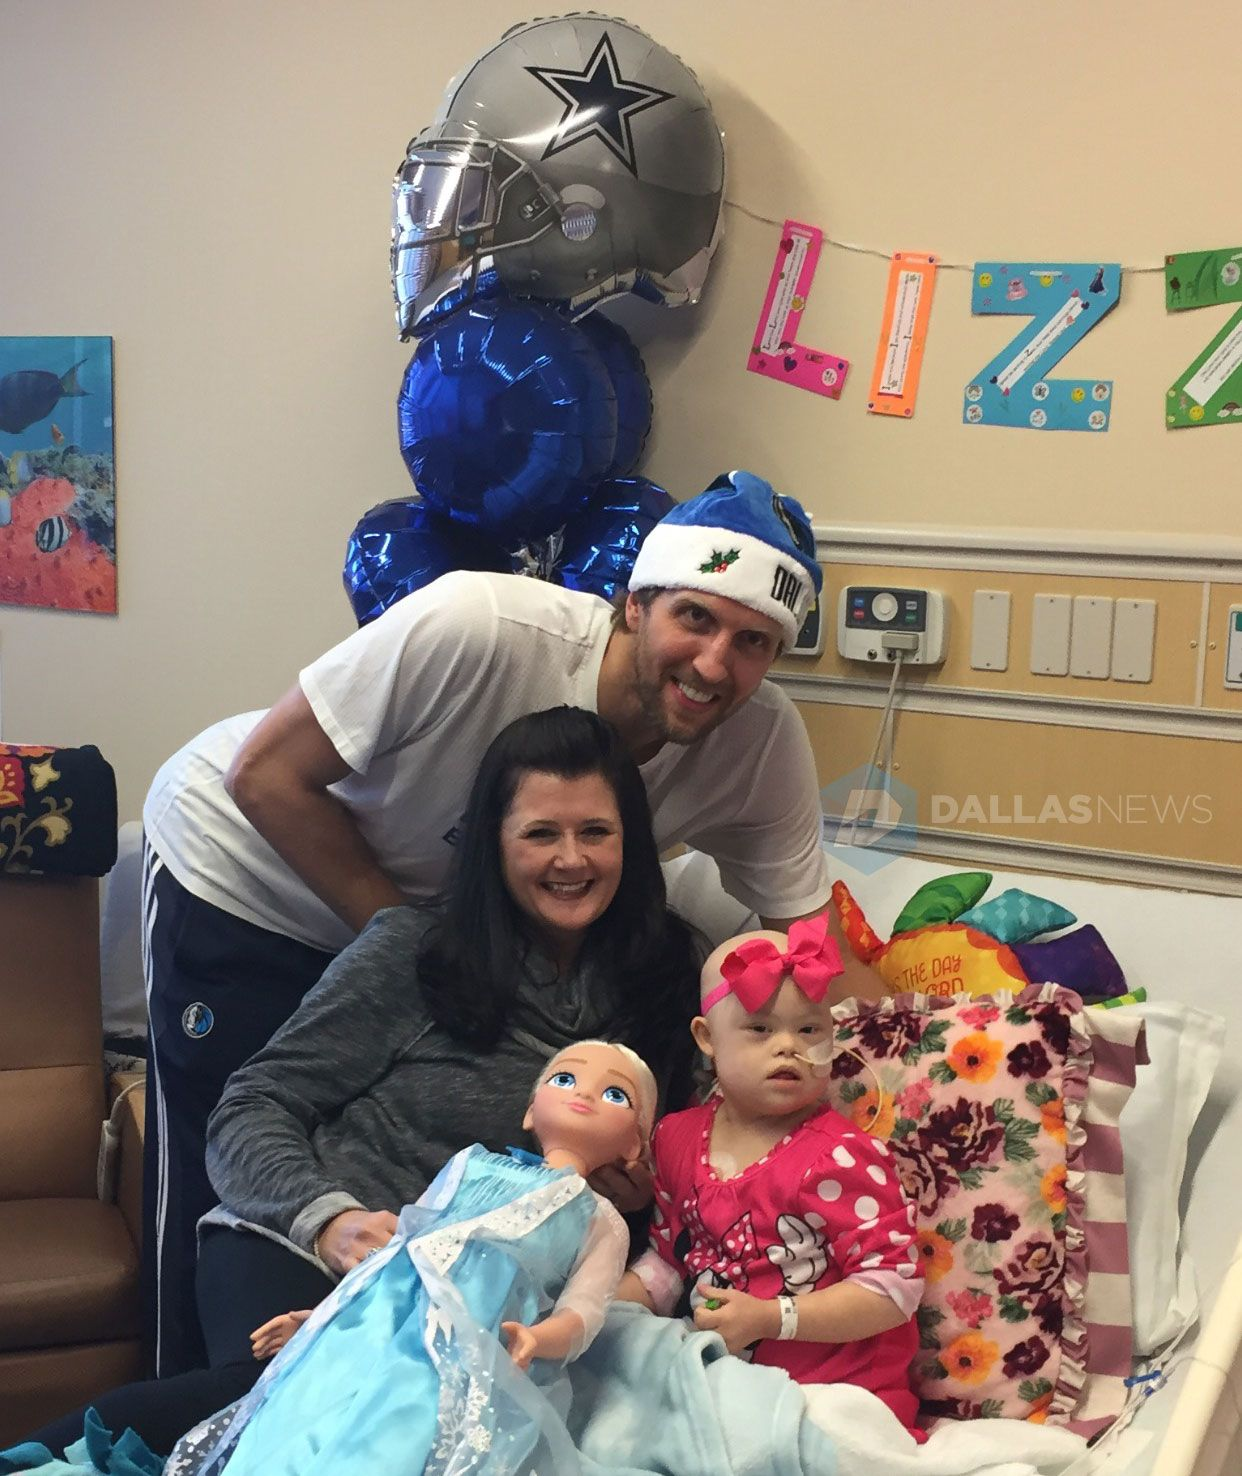 Dirk Nowitzki poses with patient Lizzy Hock, 4, and her mother Angela Hock, at Children's Medical Center after giving Lizzy and Elsa doll for Christmas.